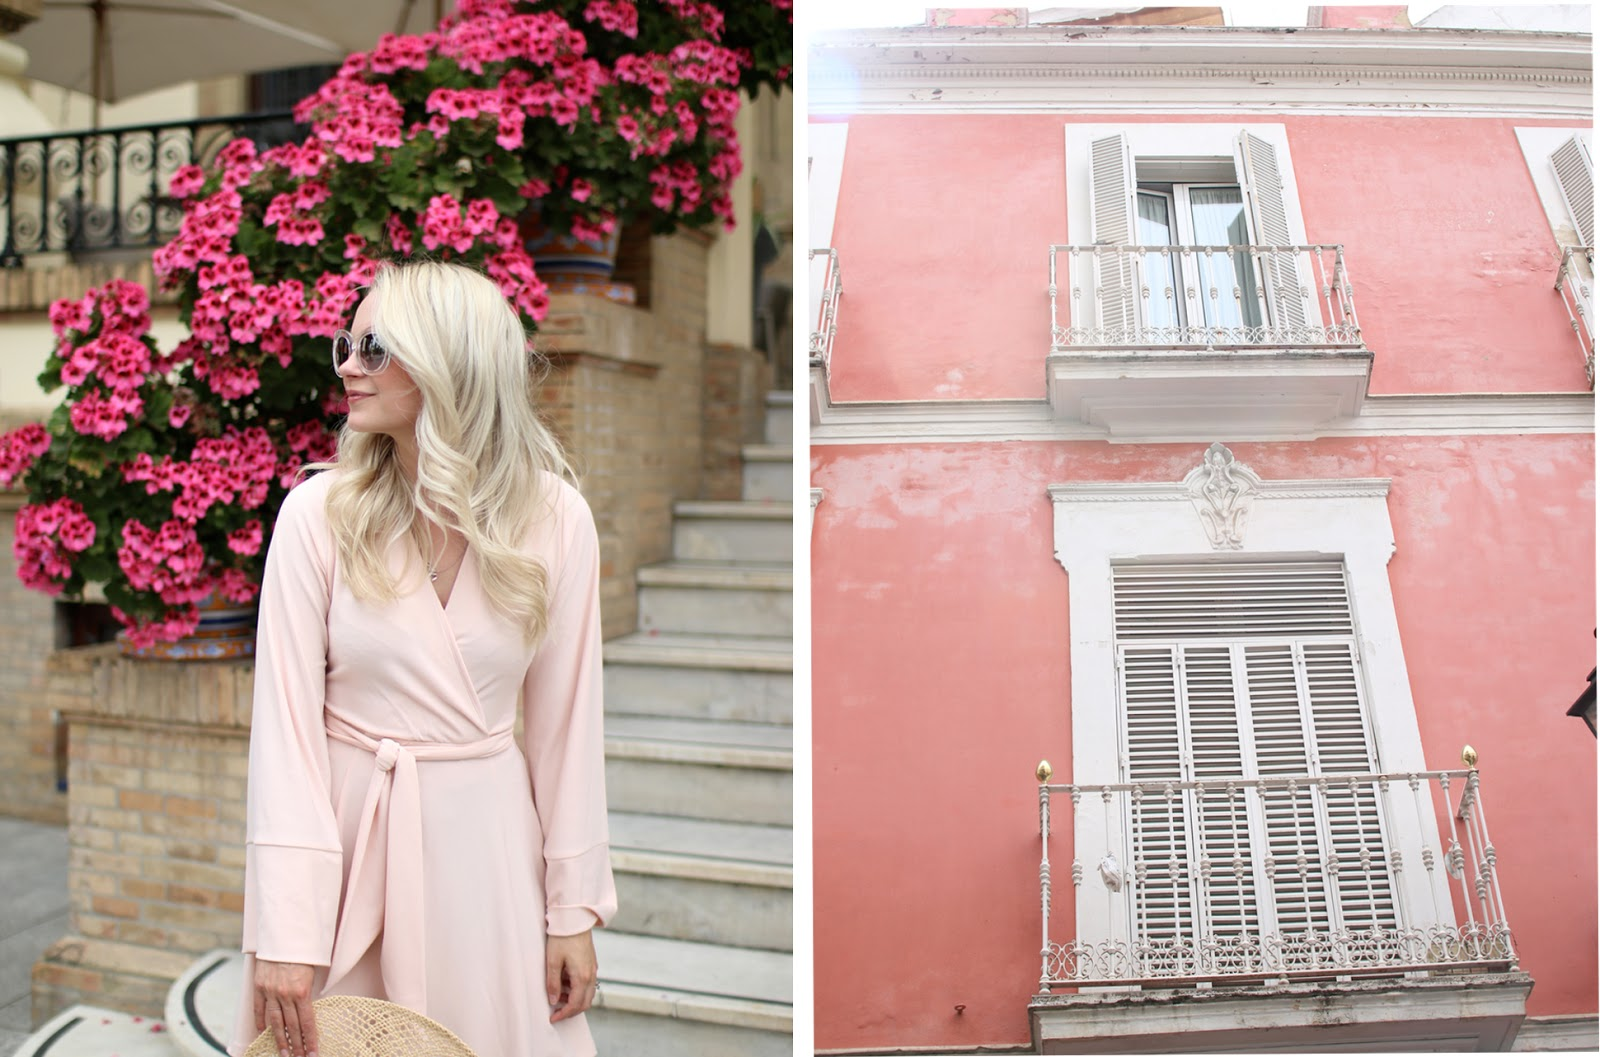 pink buildings and walls